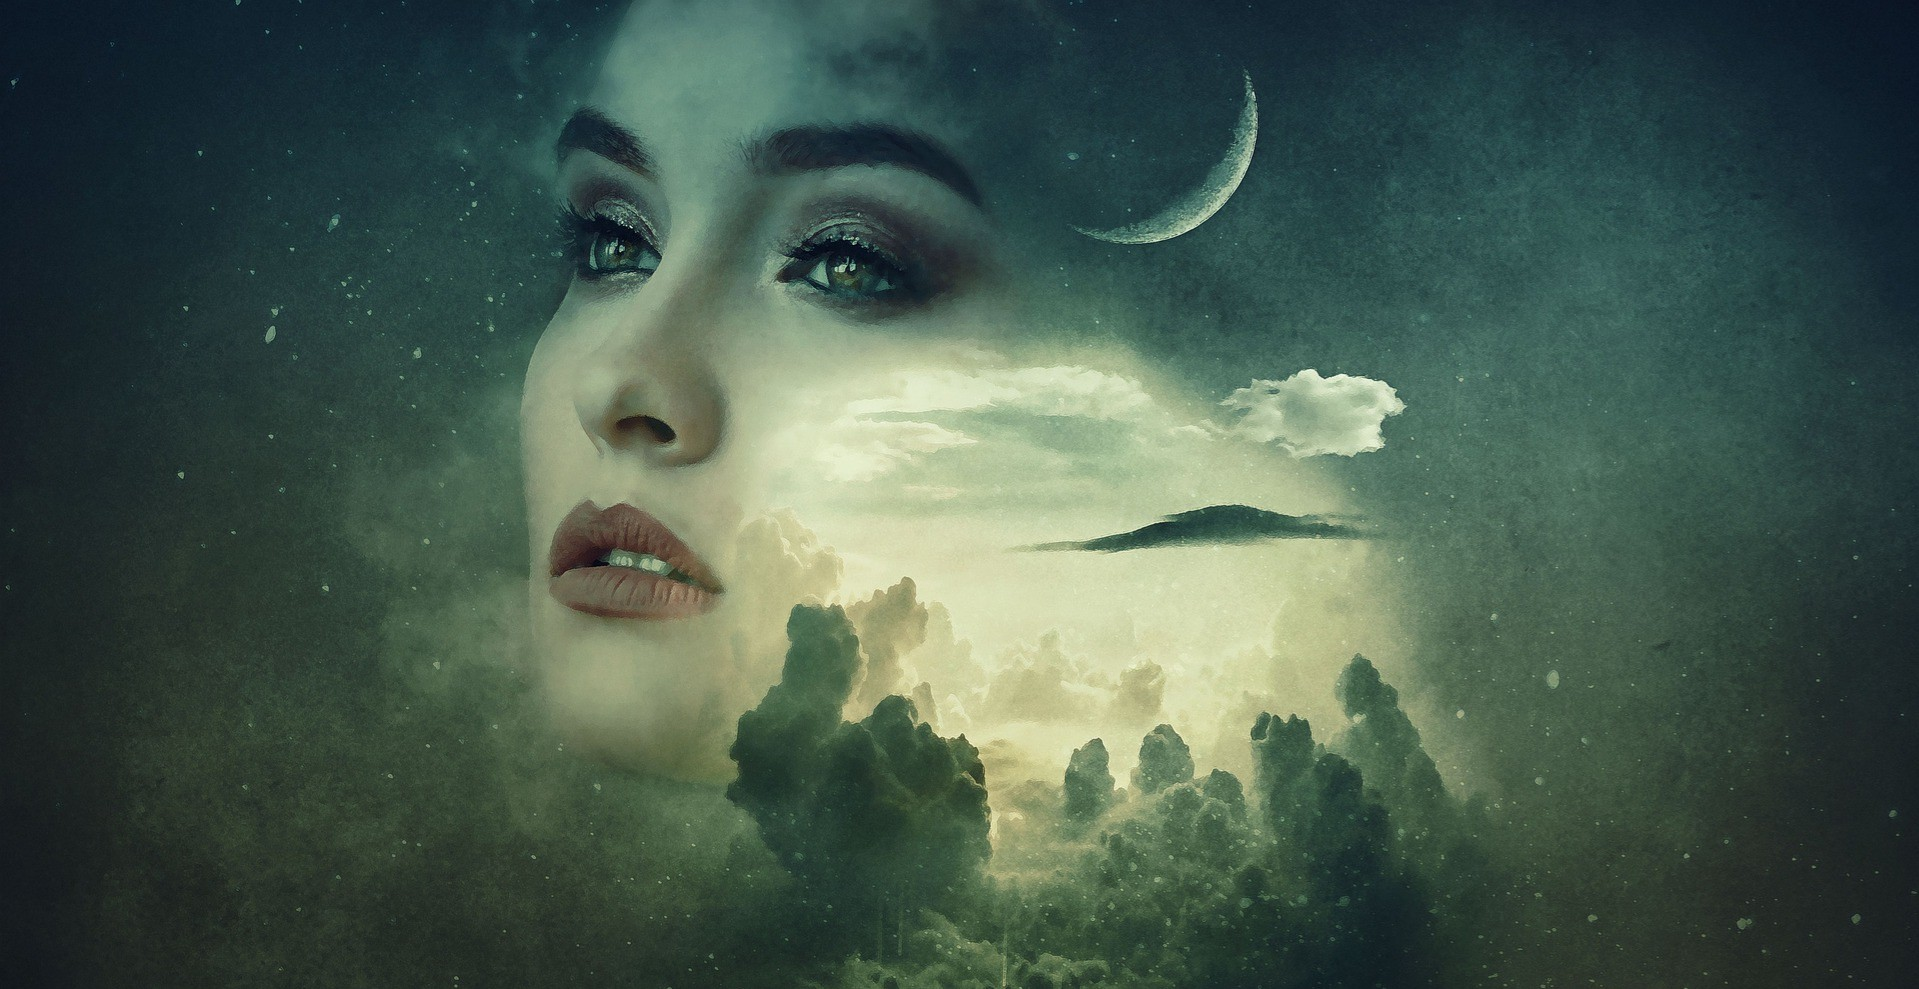 New Moon in Scorpio November 15, 2020